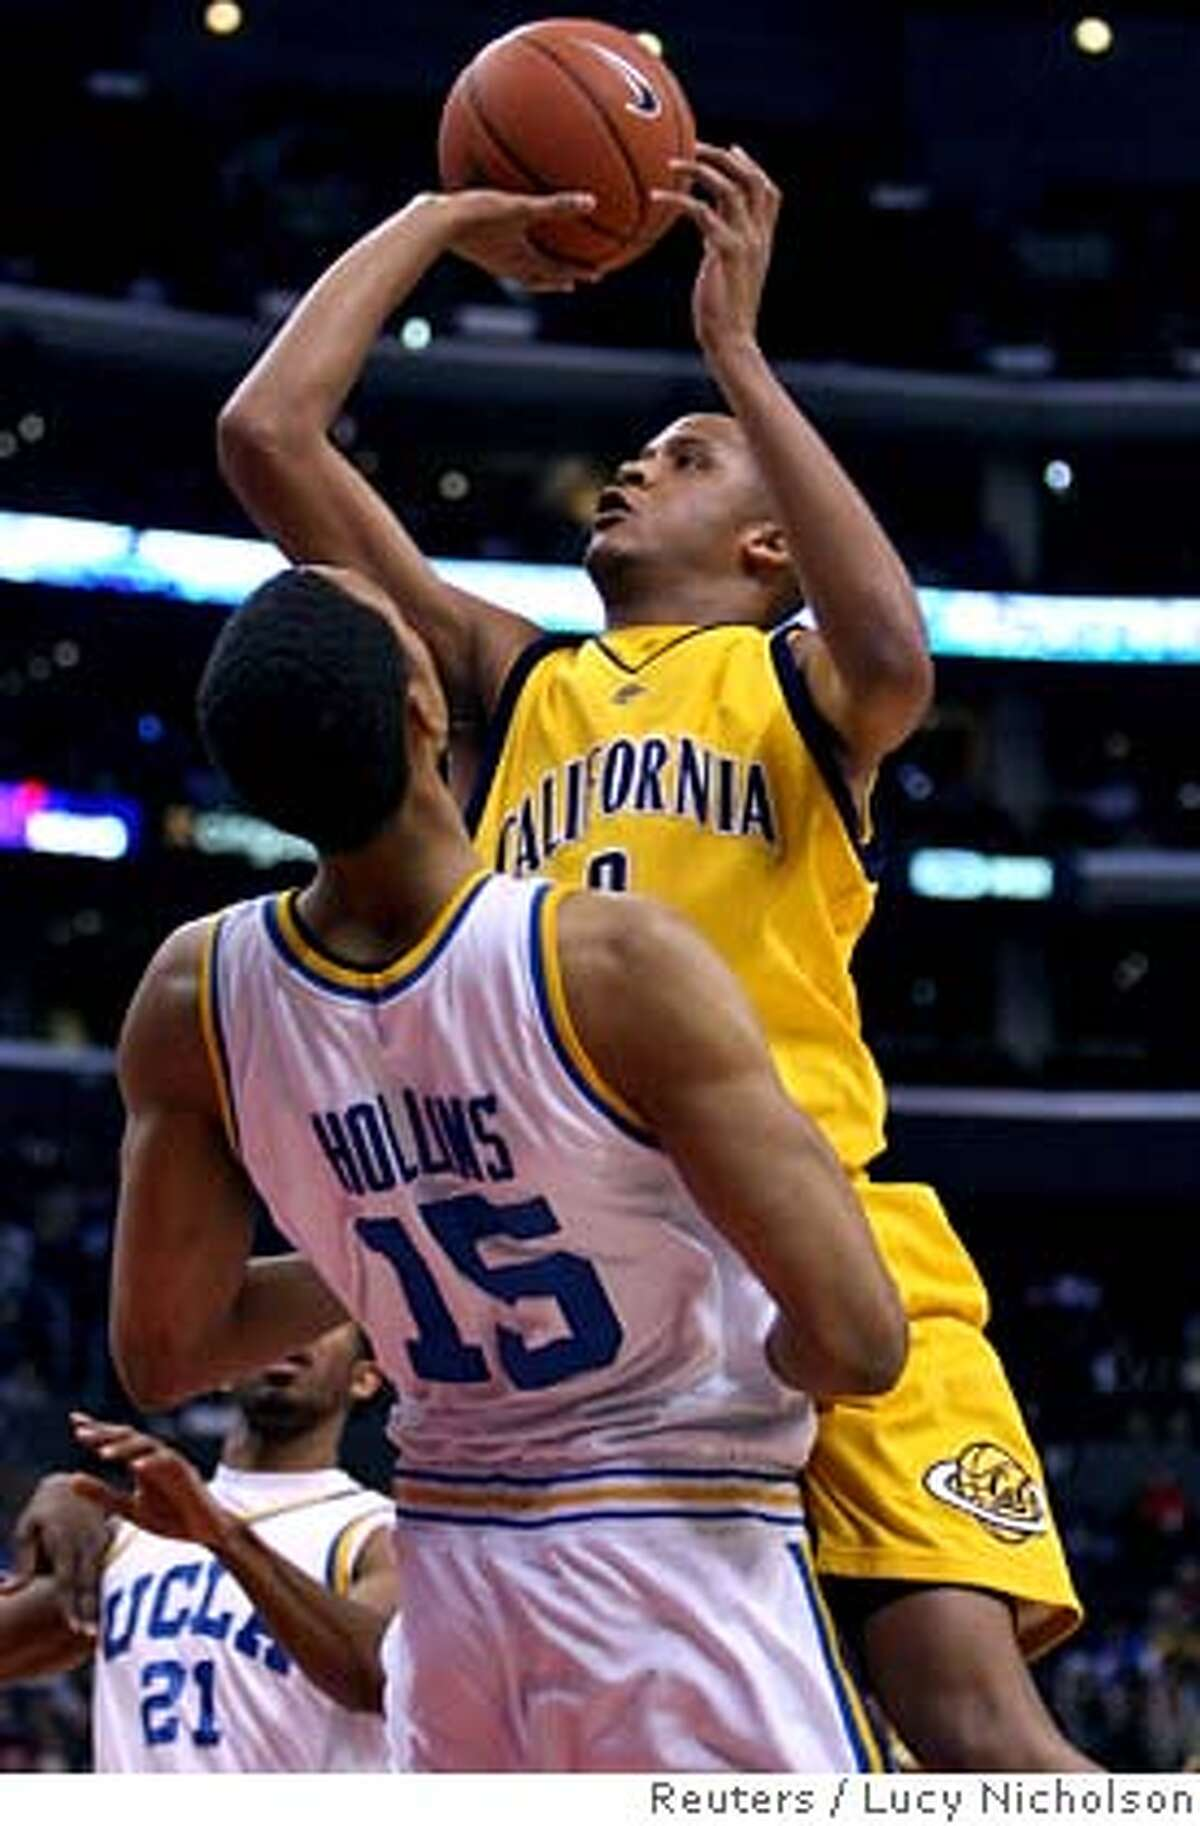 California's Omar Wilkes (R) commits an offensive foul on UCLA's Ryan Hollins during the final of 2006 PAC-10 men's basketball tournament in Los Angeles March 11, 2006. REUTERS/Lucy NicholsonRan on: 03-12-2006 Jordan Farmar of UCLA (second from left) celebrates with his teammates after UCLA defeated Cal in the finals of the Pac-10 tournament.Ran on: 03-12-2006 Jordan Farmar of UCLA (second from left) celebrates with his teammates after UCLA defeated Cal in the finals of the Pac-10 tournament. 0